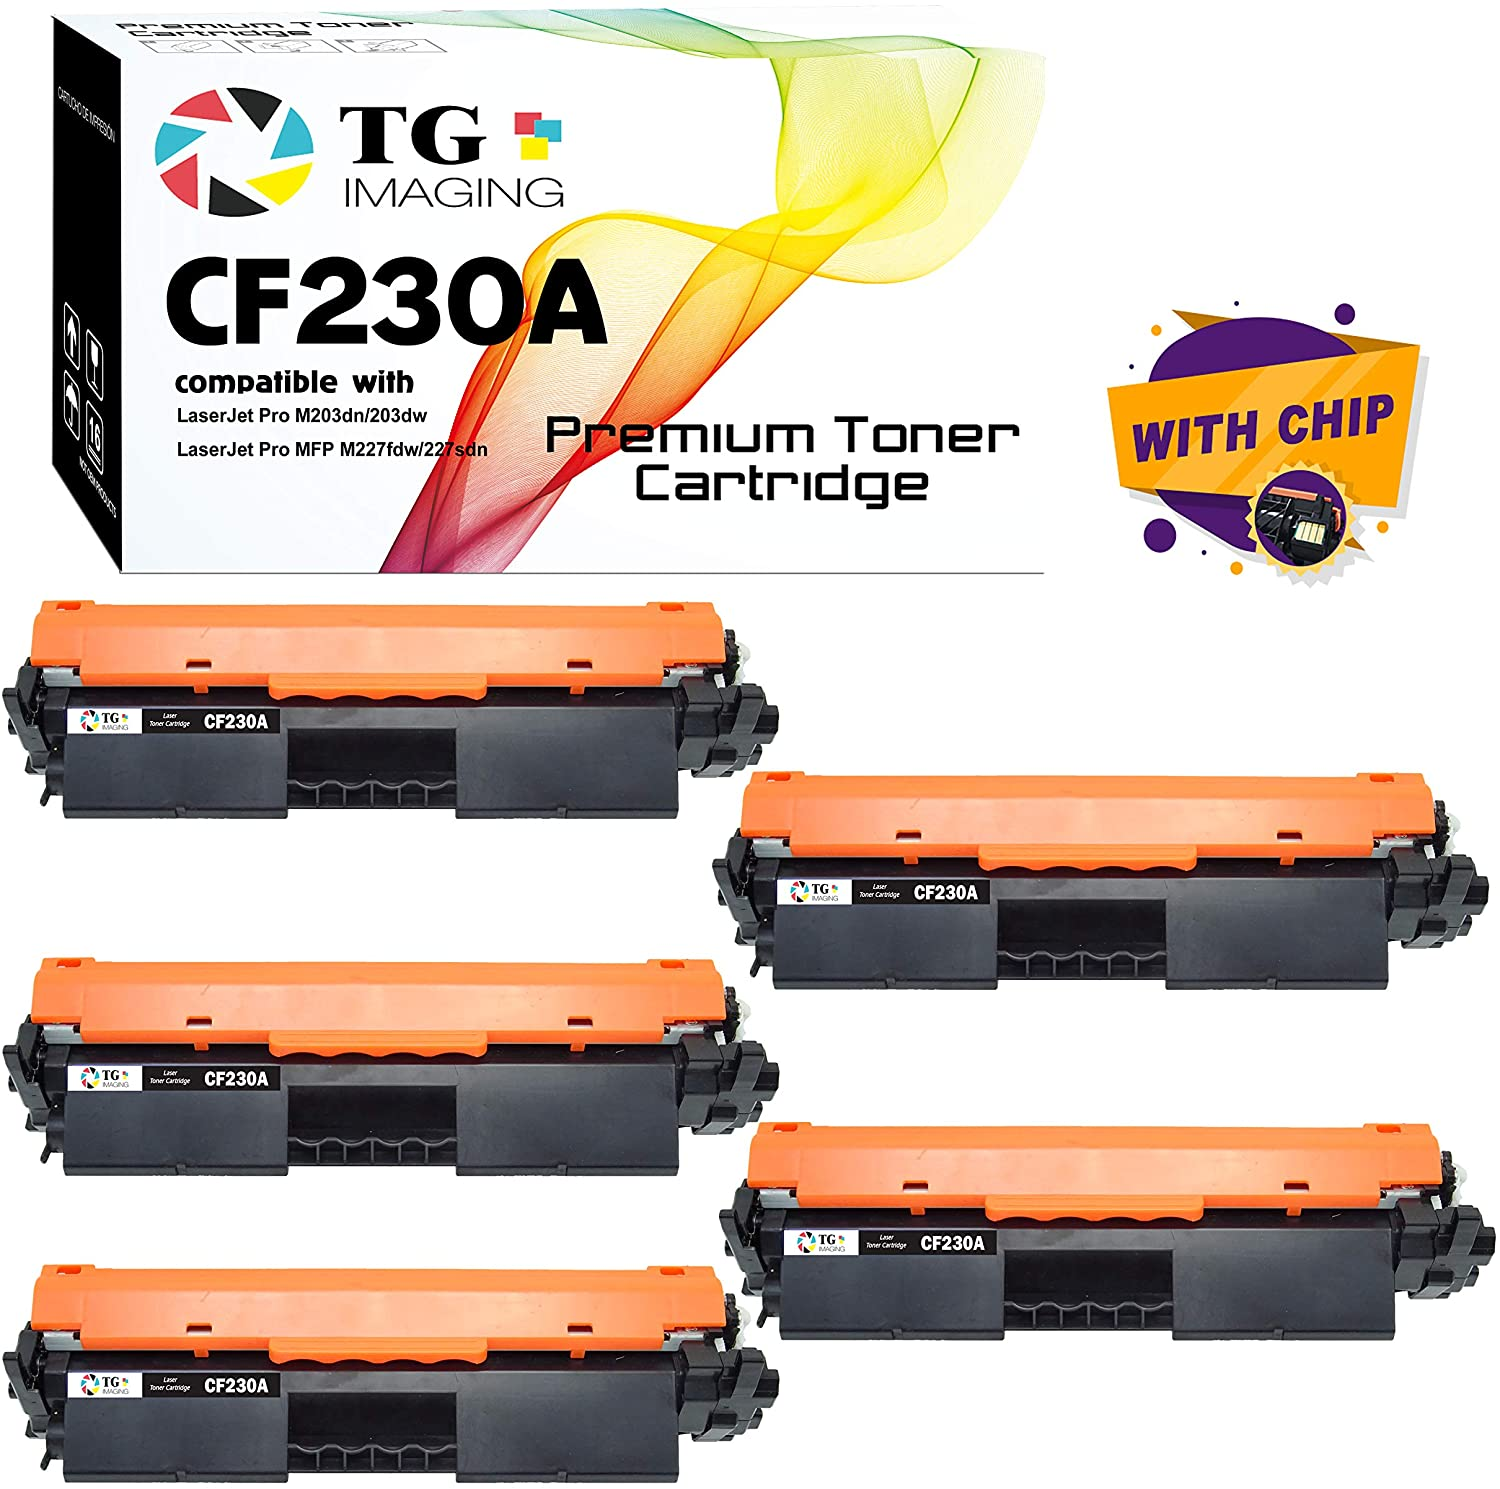 (5 Black Set) TG Imaging Compatible CF230A 30A Toner Cartridge CF230X for use in HP M227 M203 Printers (with Chip)